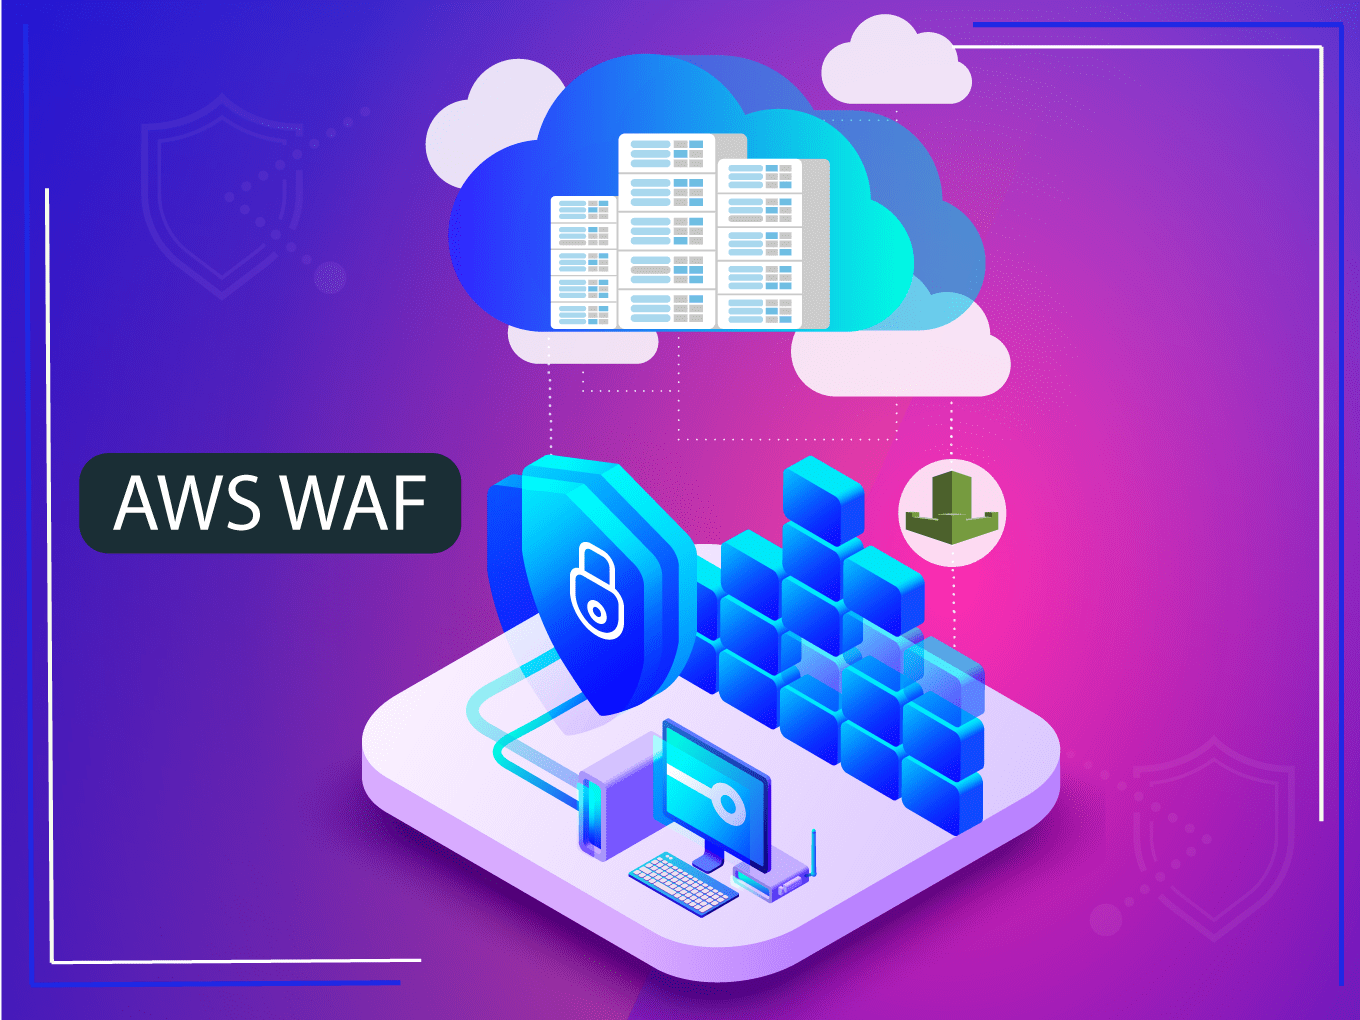 AWS WAF: How it helps organizations to secure their web applications from common web exploits.